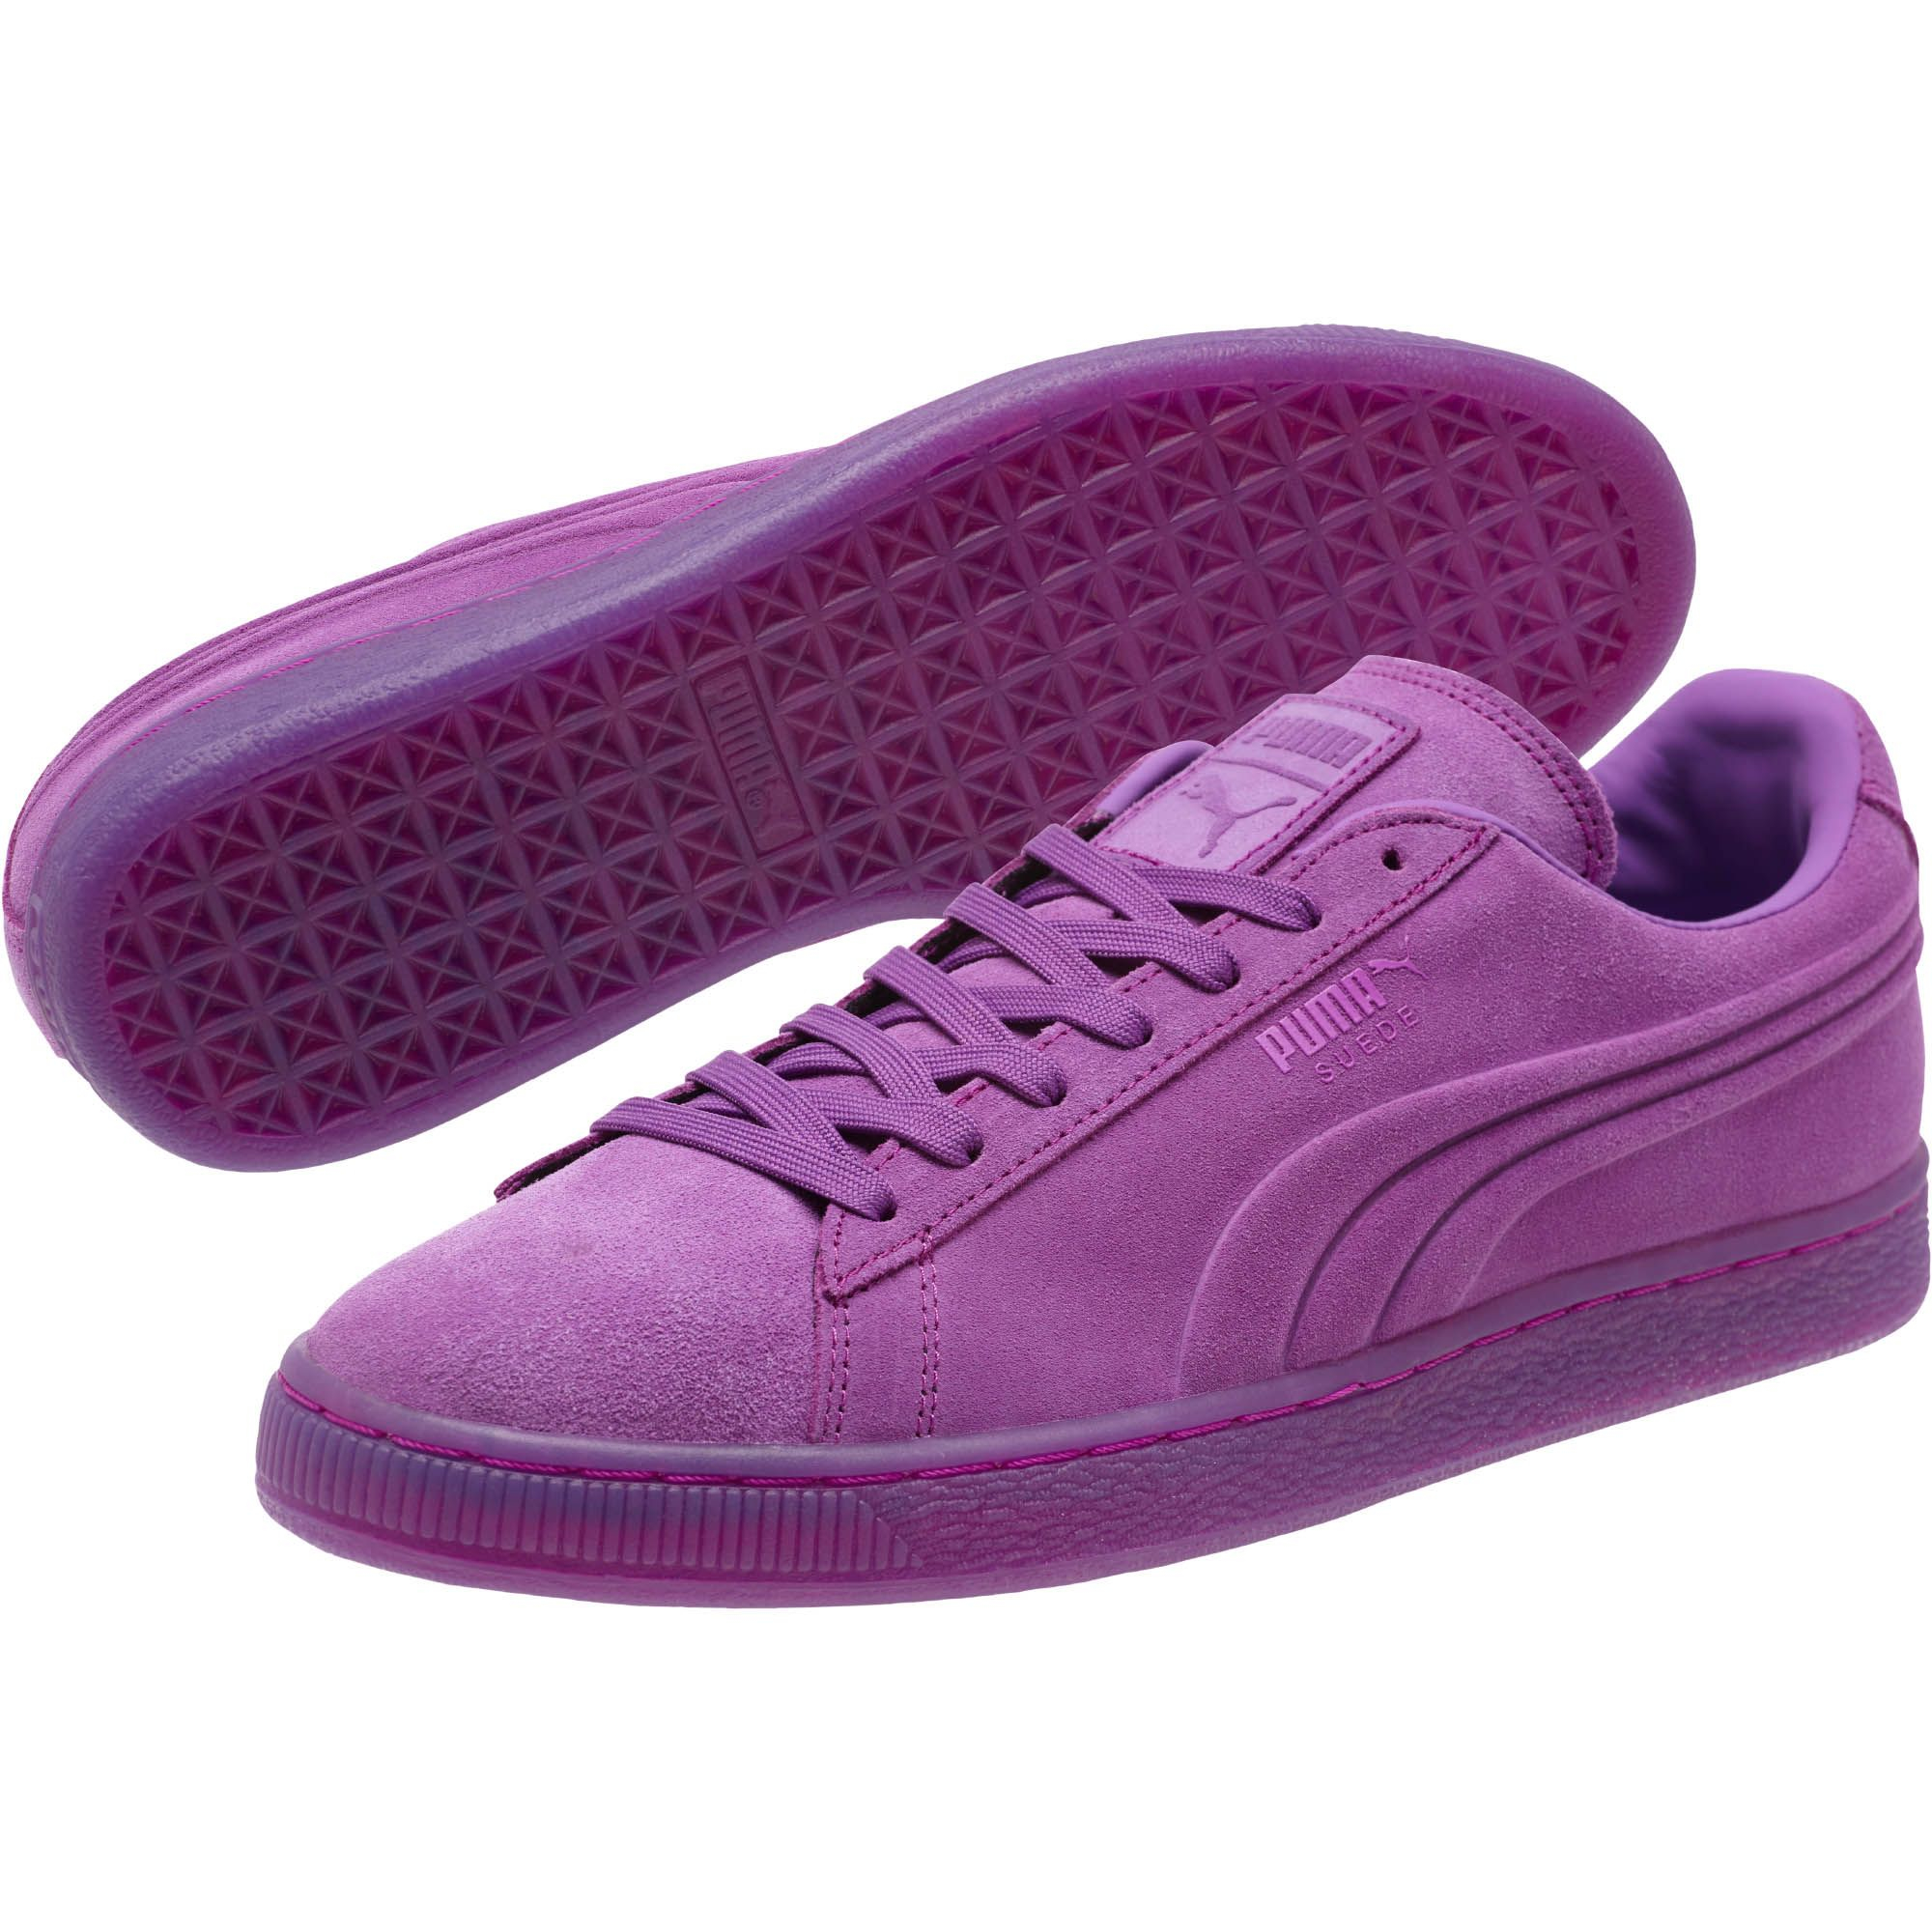 8511abfc2b9e Lyst - PUMA Suede Embossed Iced Fluo Men s Sneakers in Purple for Men